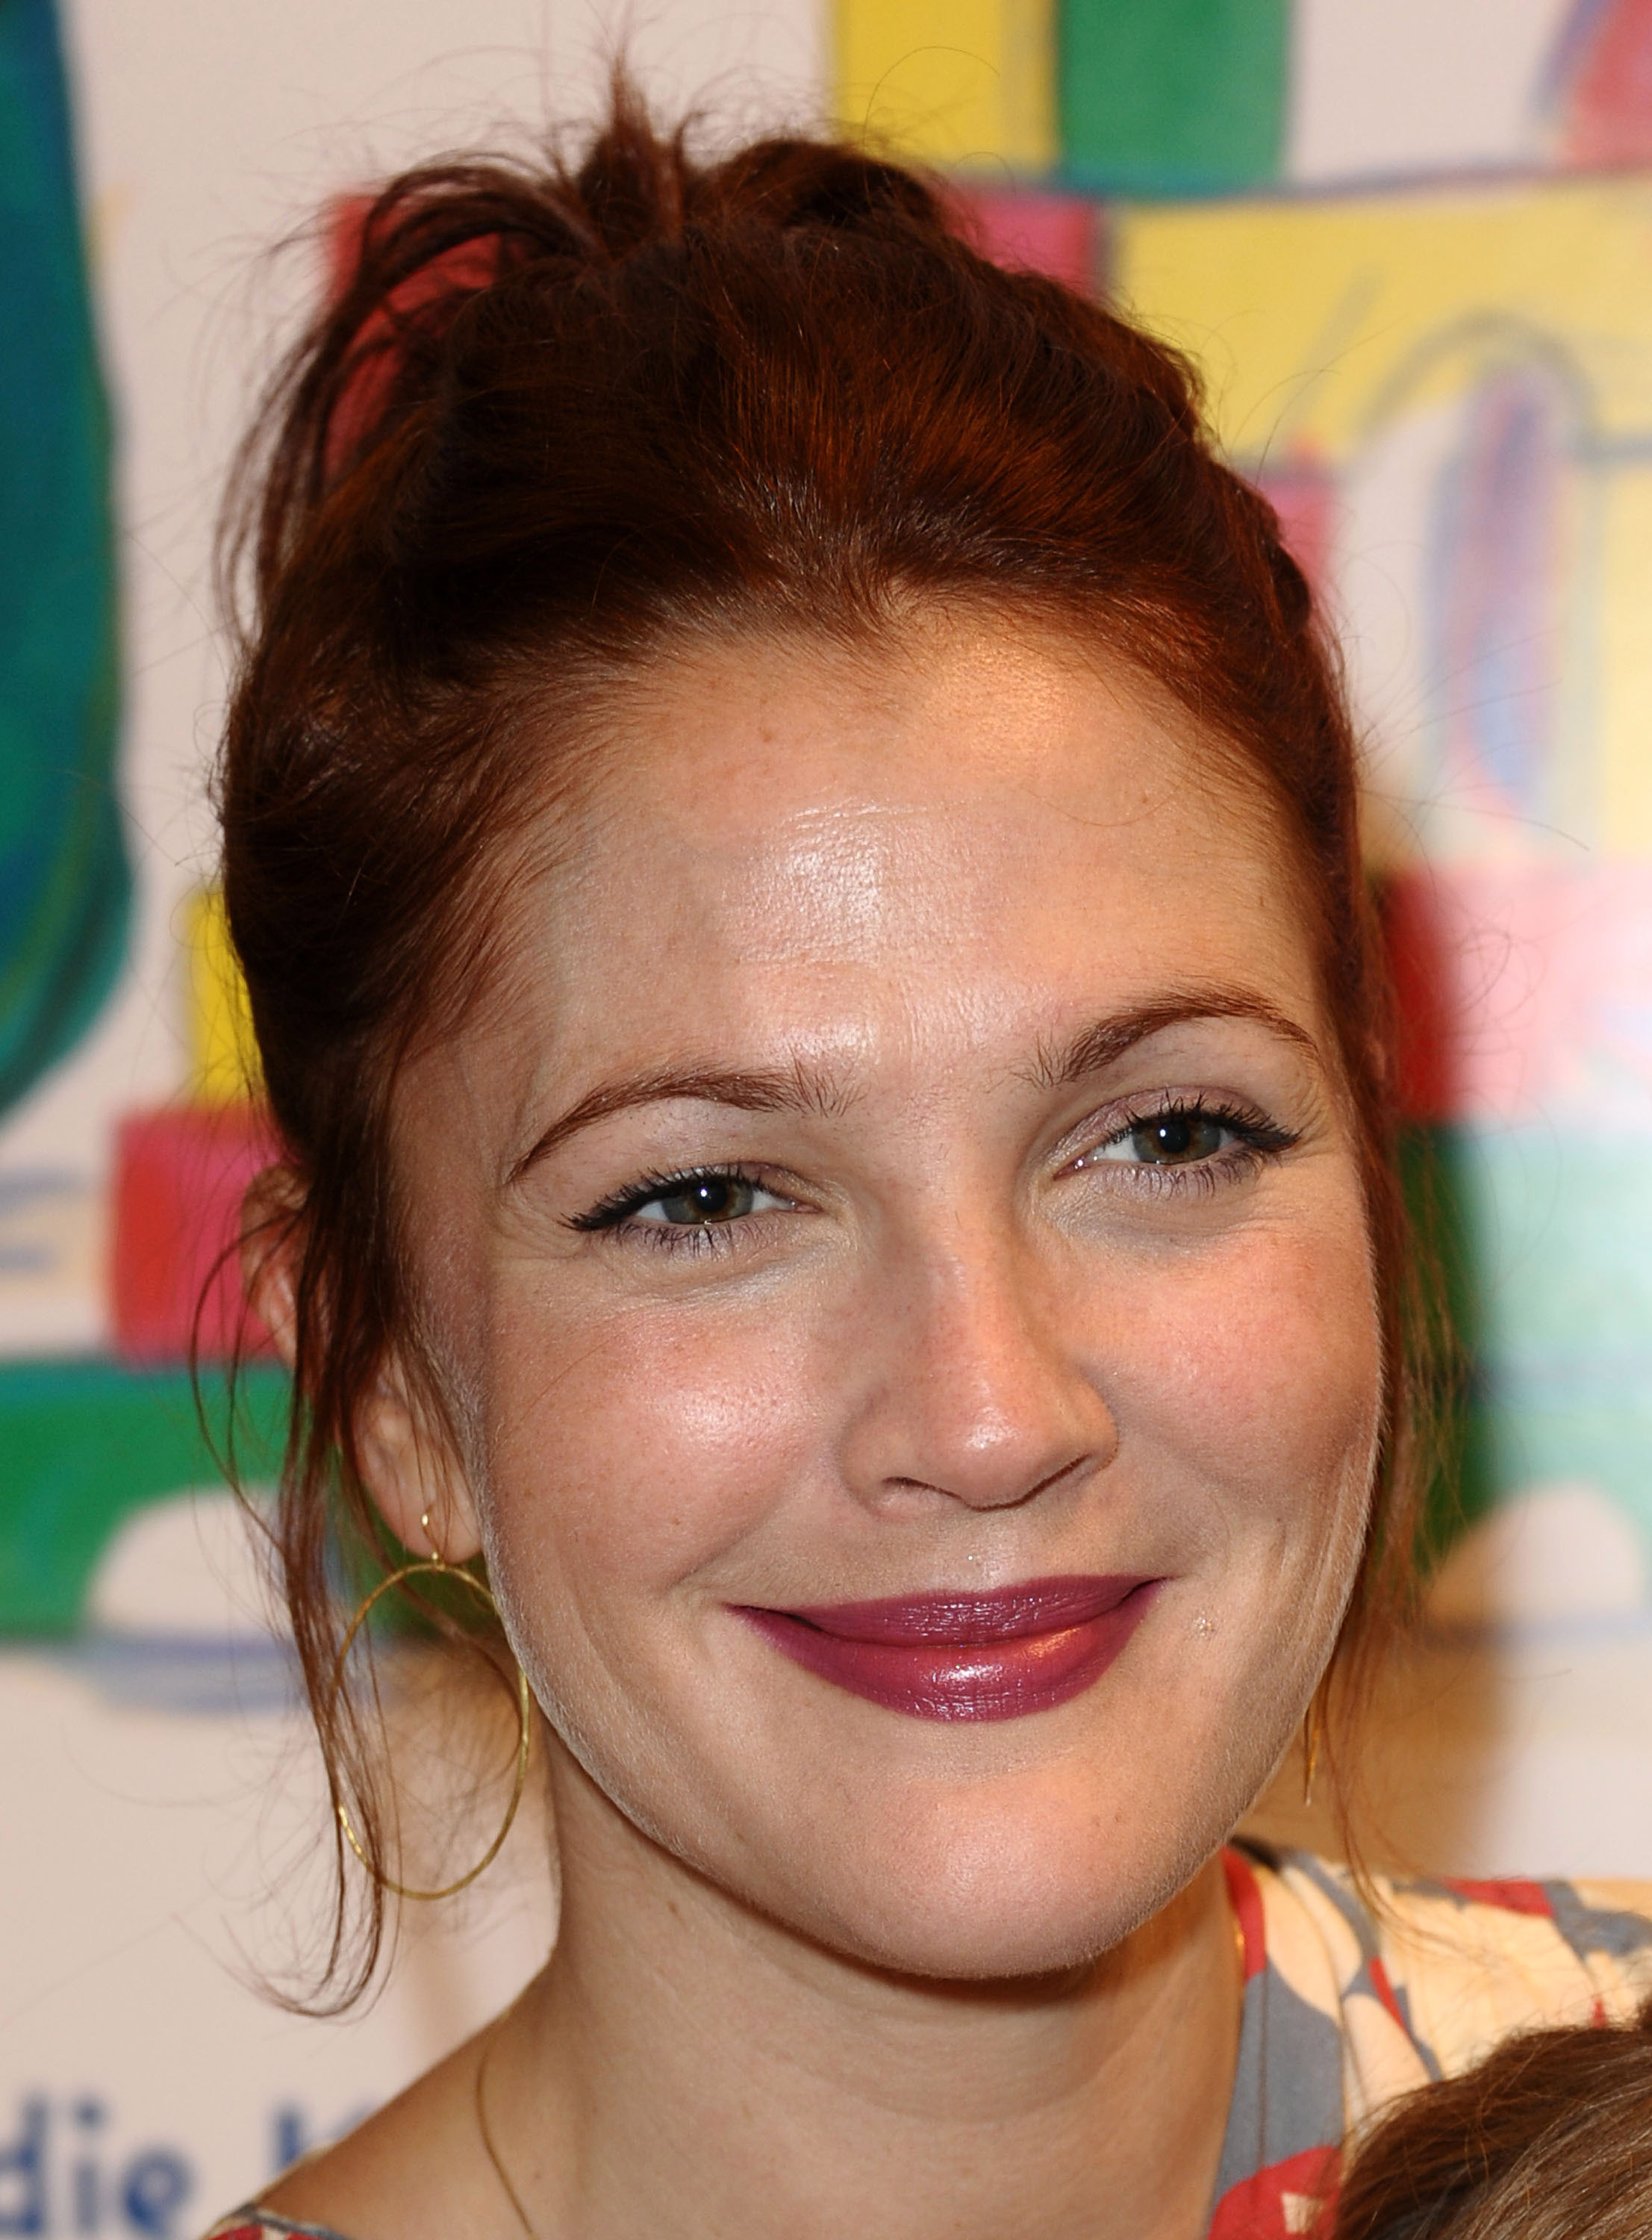 Drew Barrymore wore her red hair pulled back.